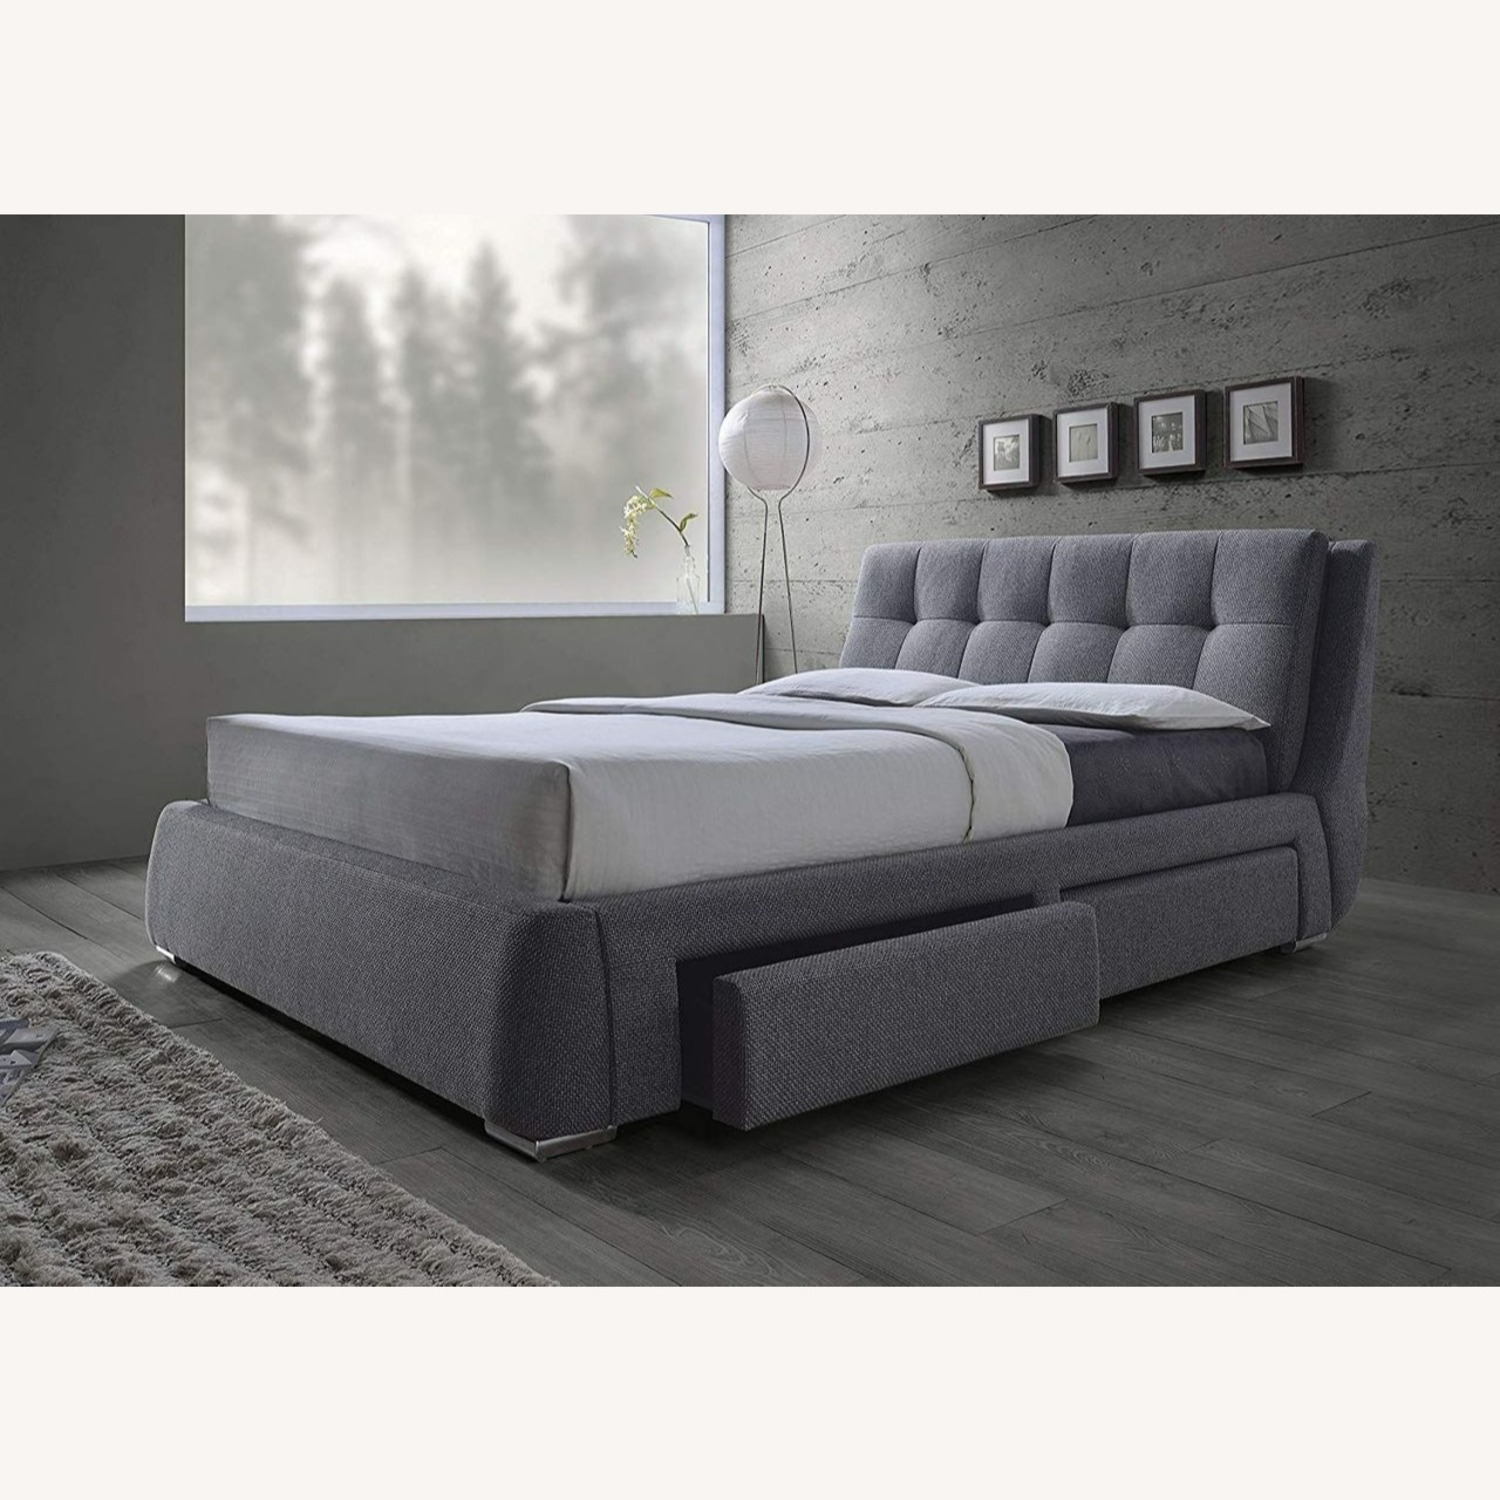 King Storage Bed W/ 4 Drawers In Soft Grey - image-3